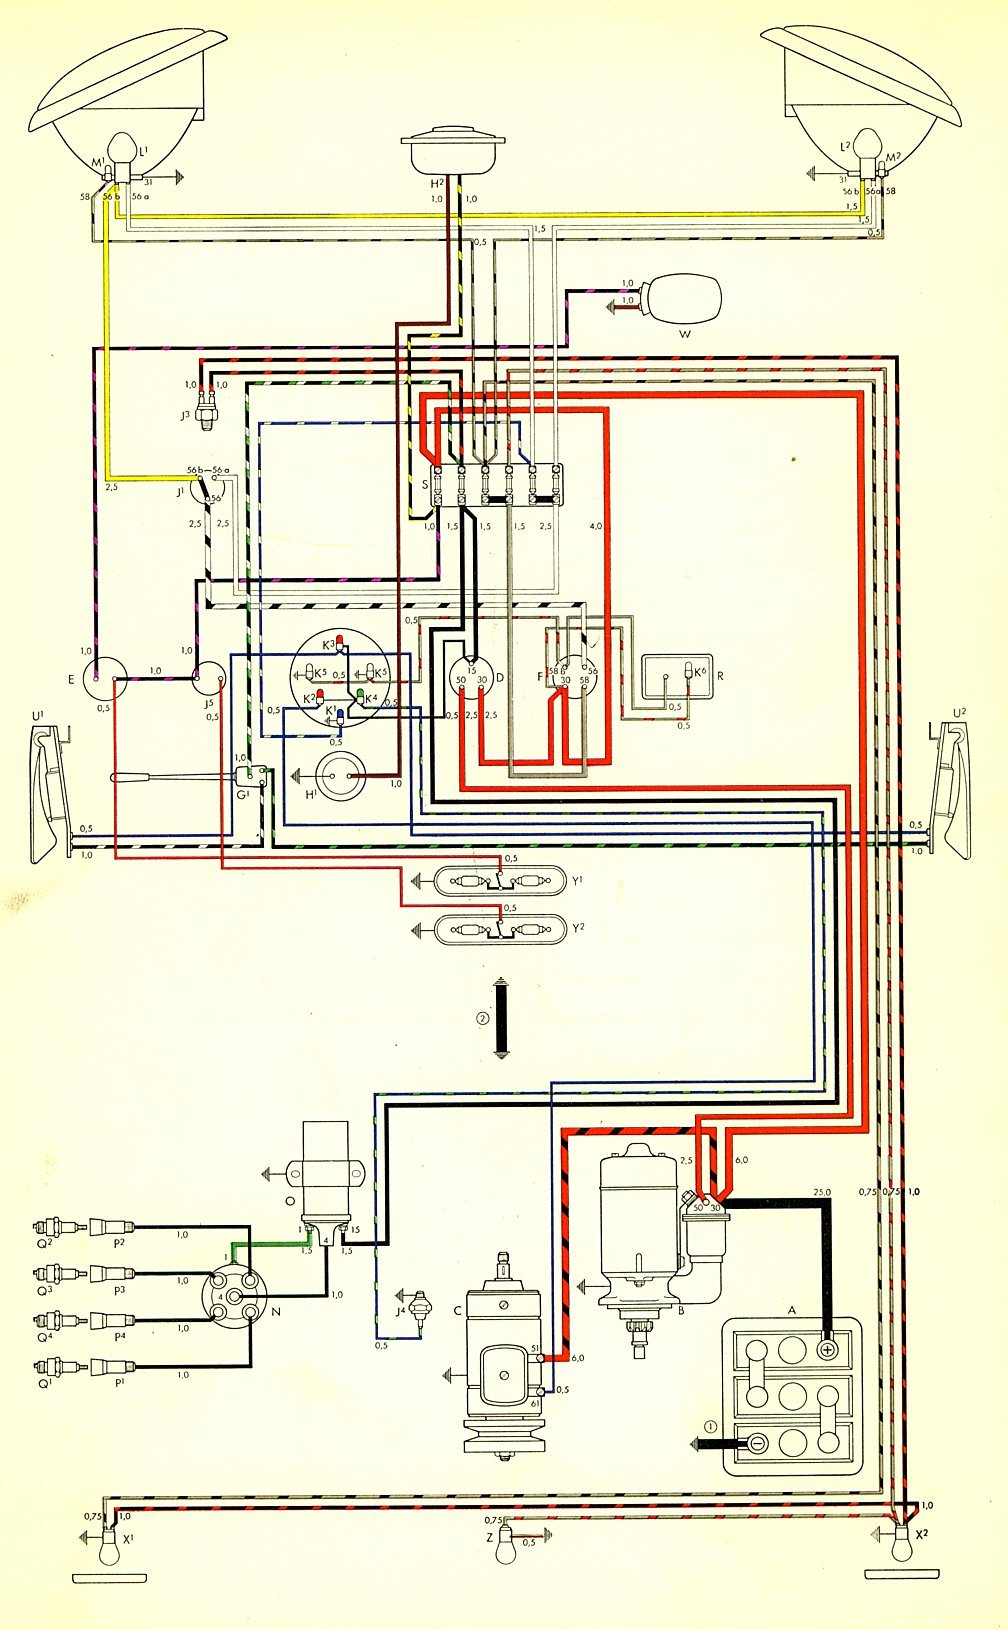 bus_59 thesamba com type 2 wiring diagrams 1955 plymouth wiring diagram at nearapp.co